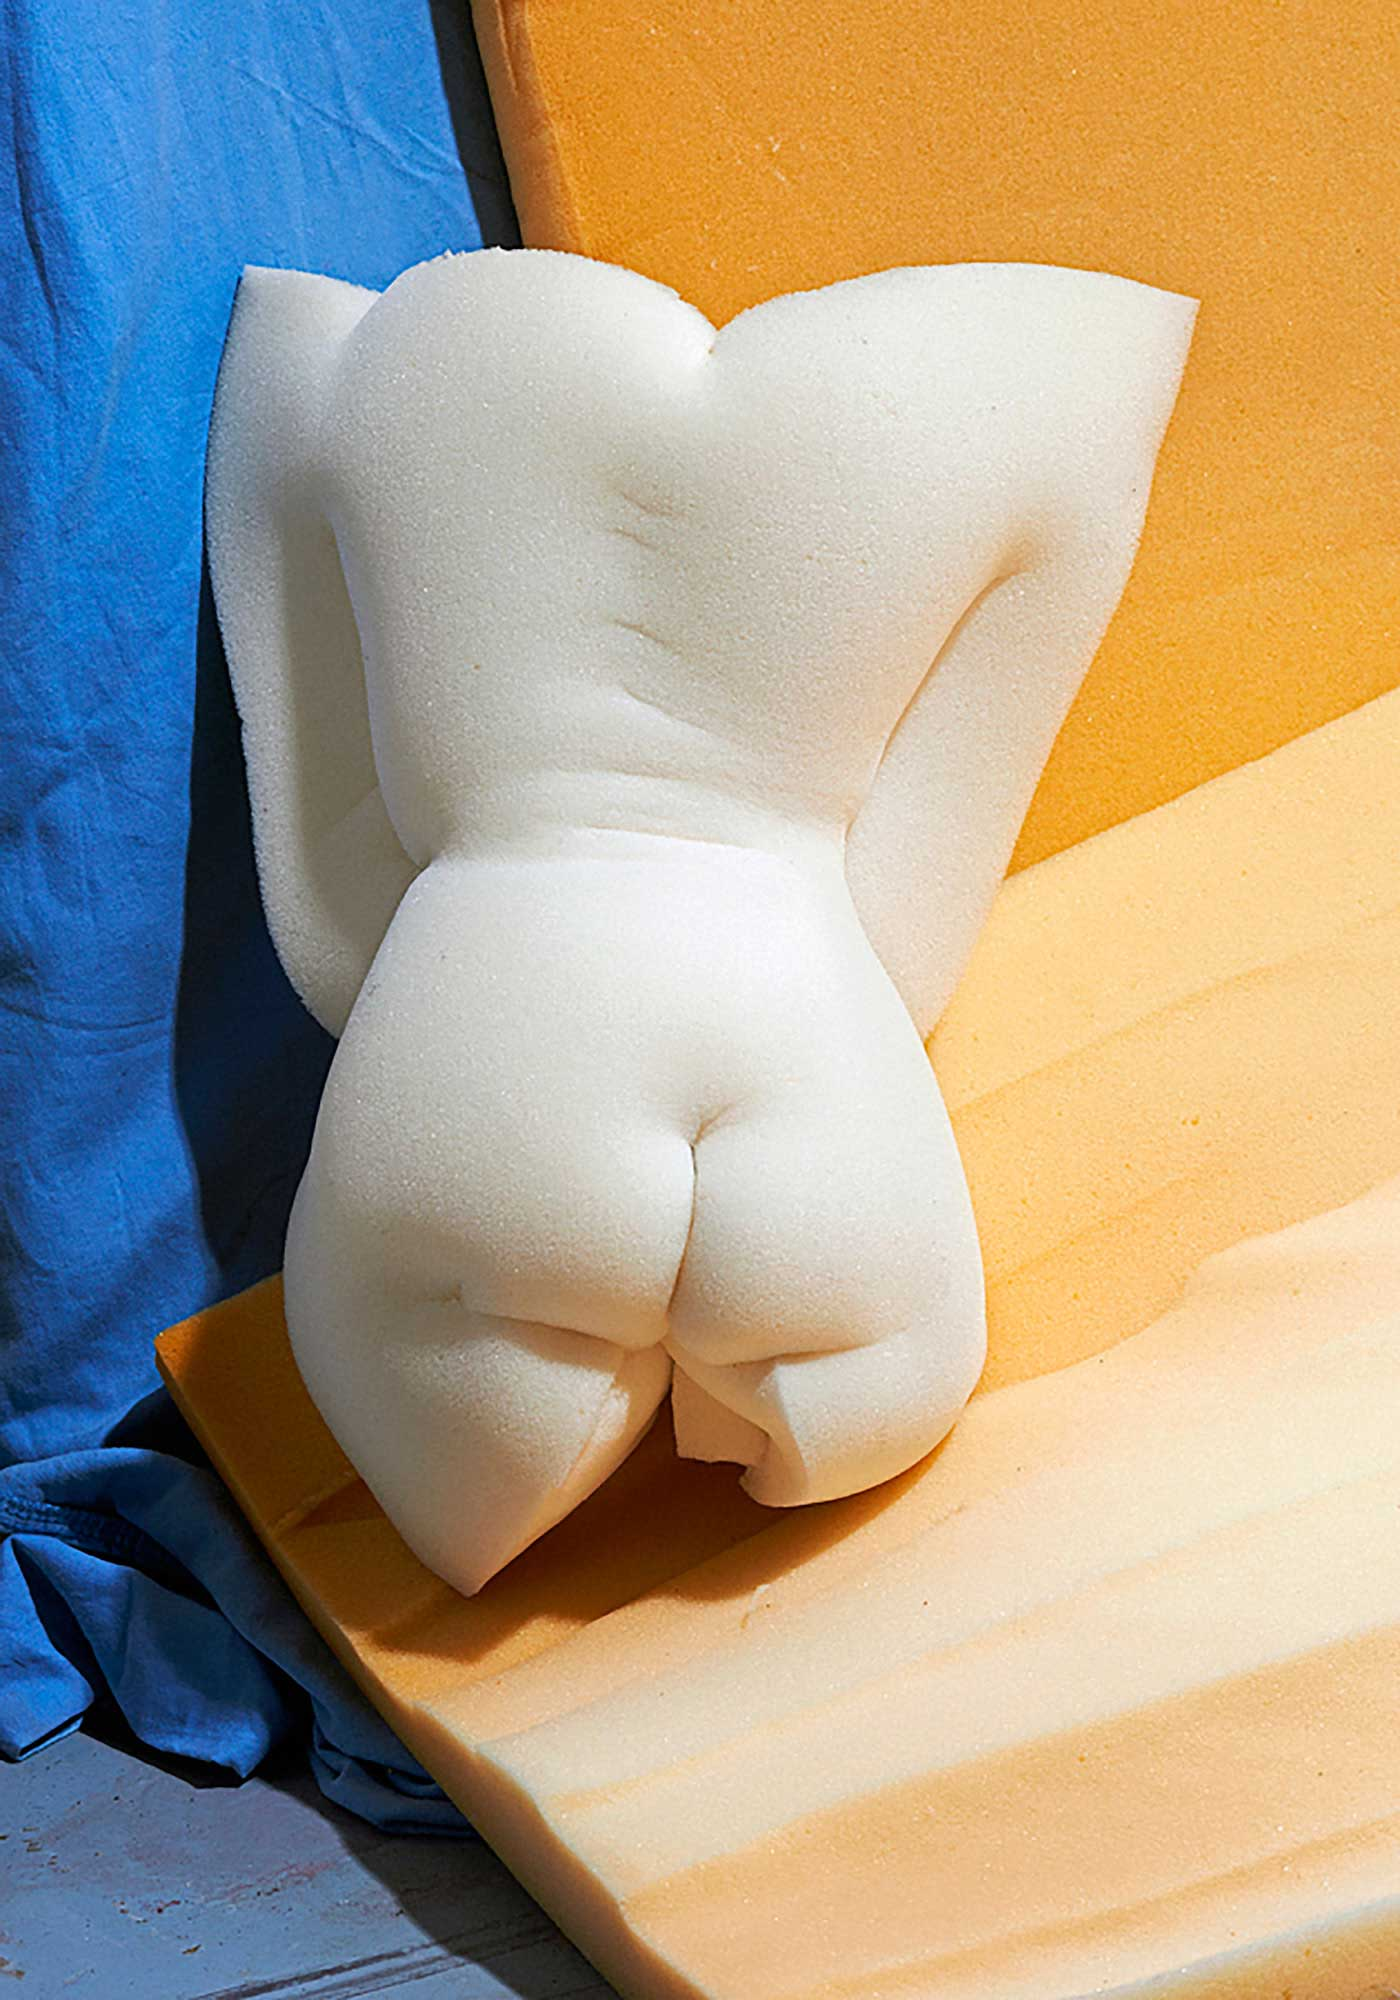 Nudie Rudie Foam Sculptures by Etienne Gros | Yellowtrace